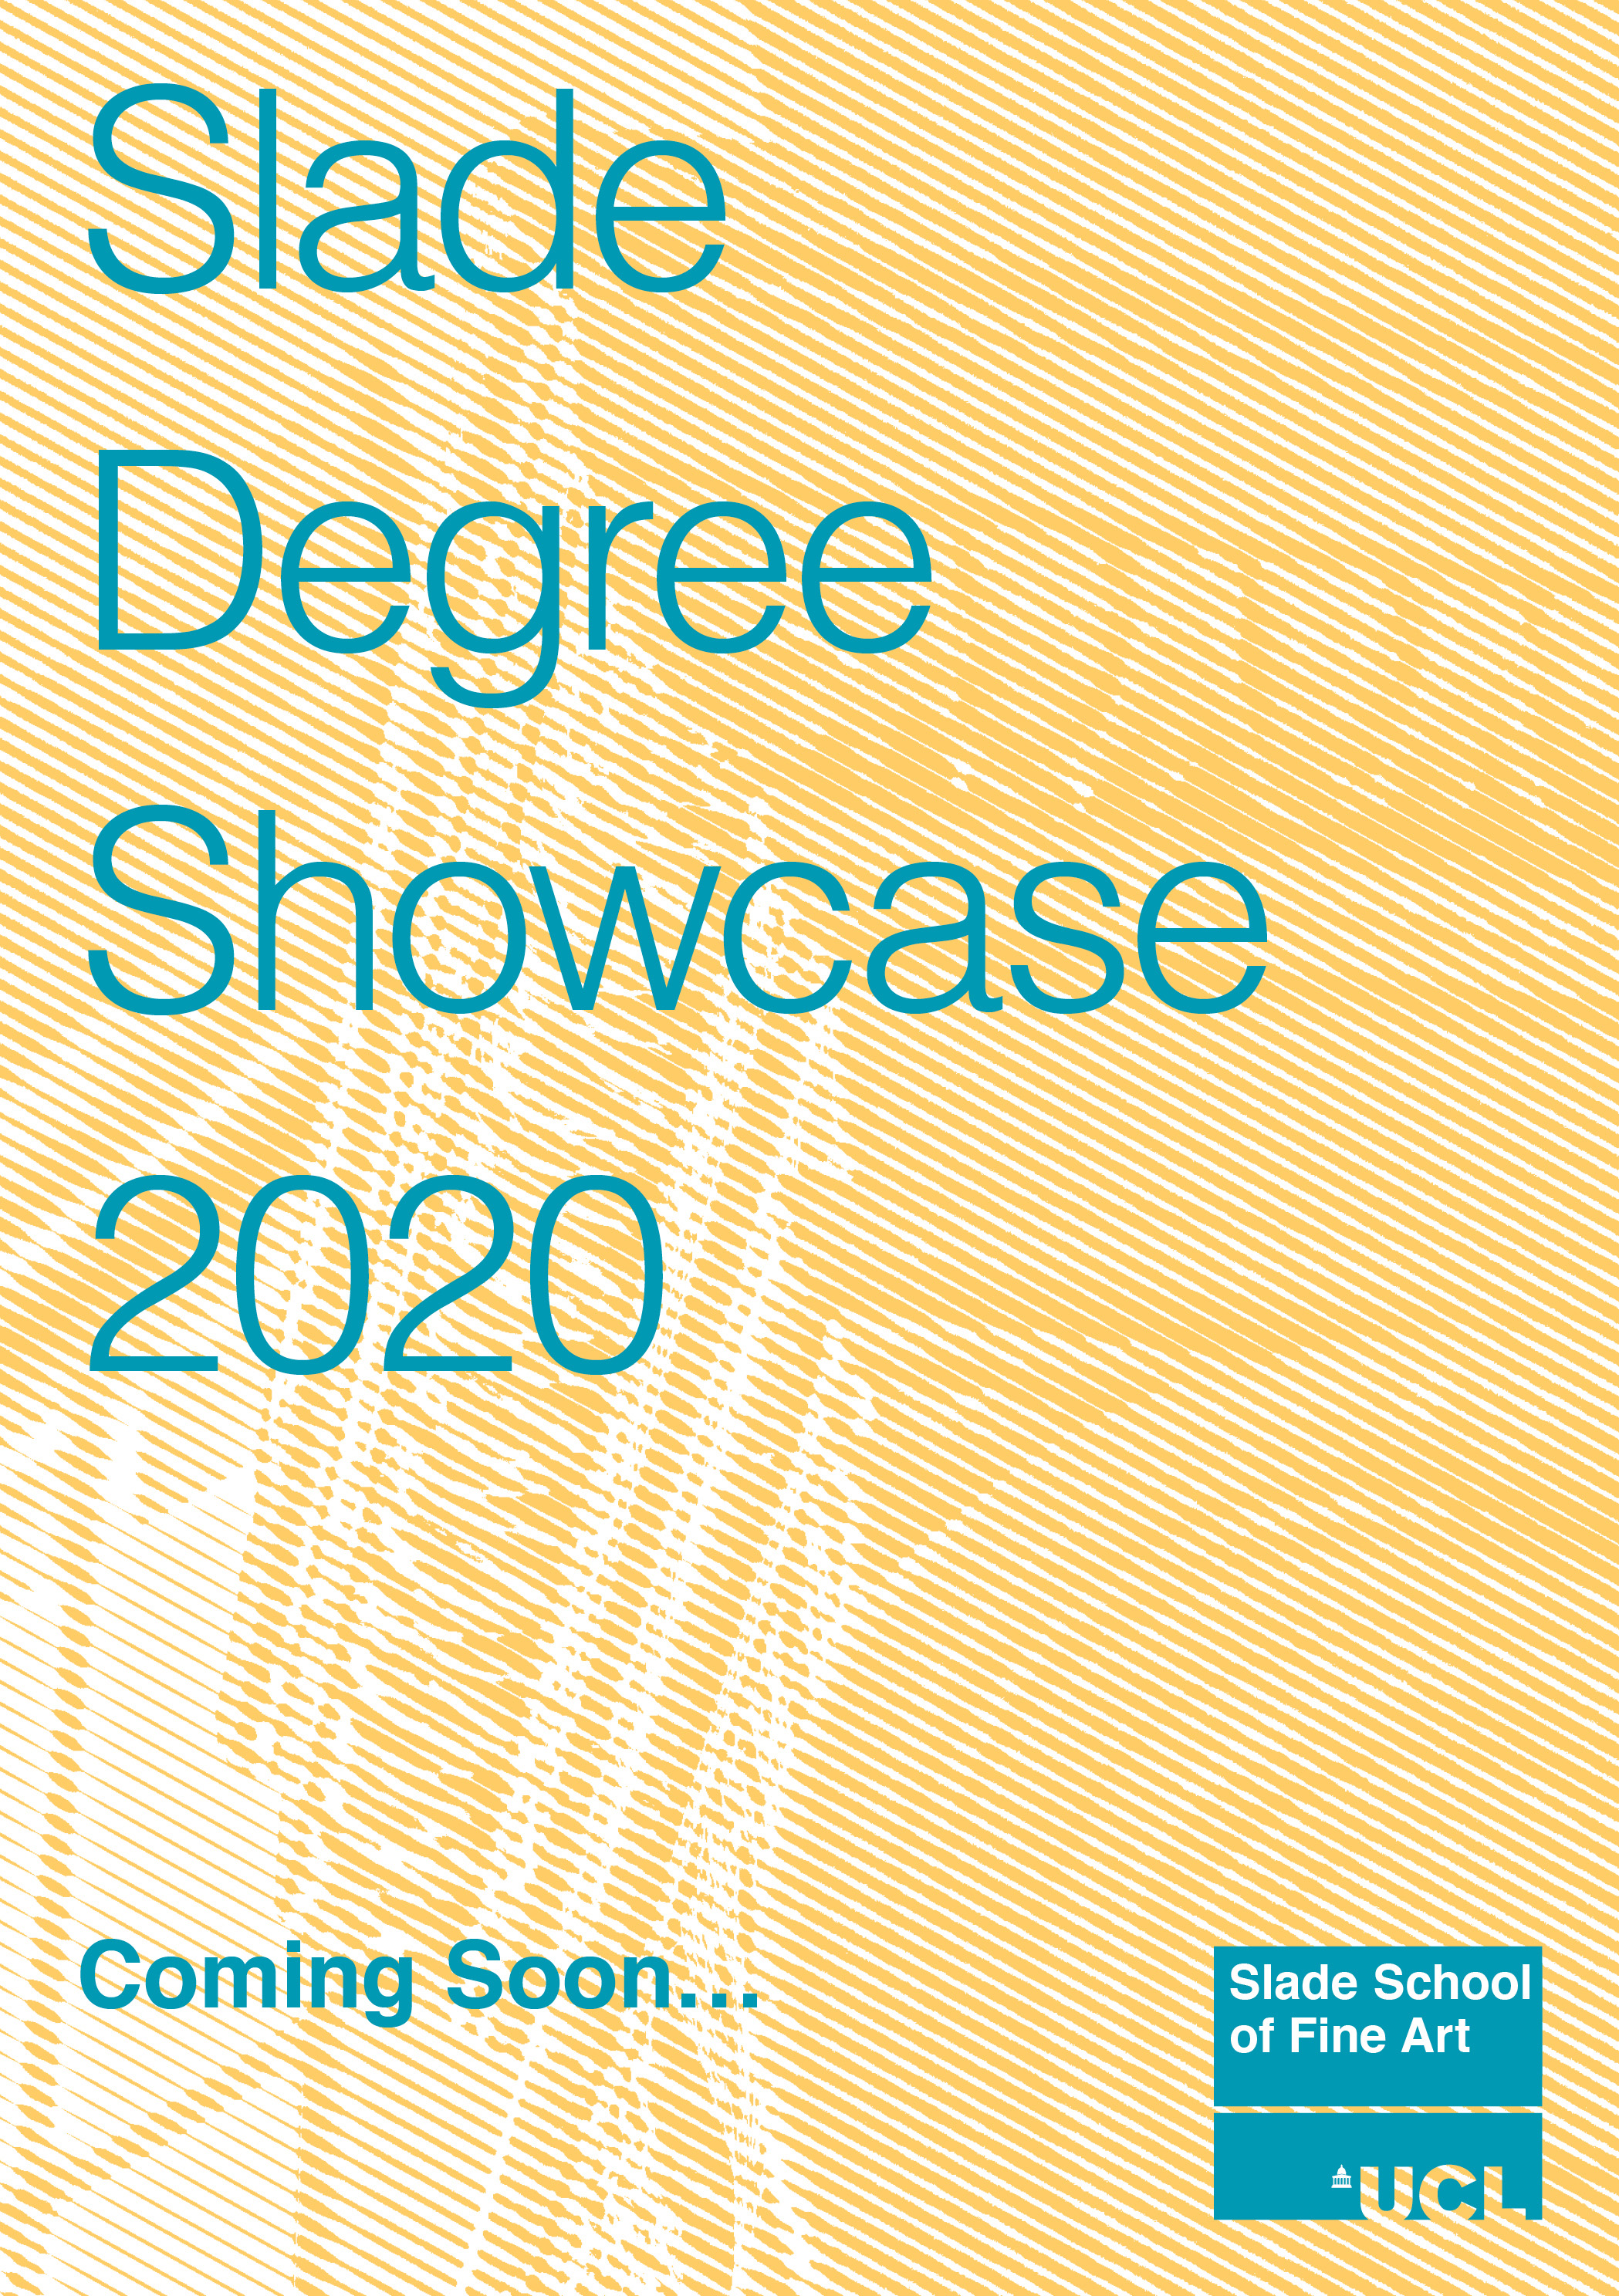 Slade Degree Showcase 2020